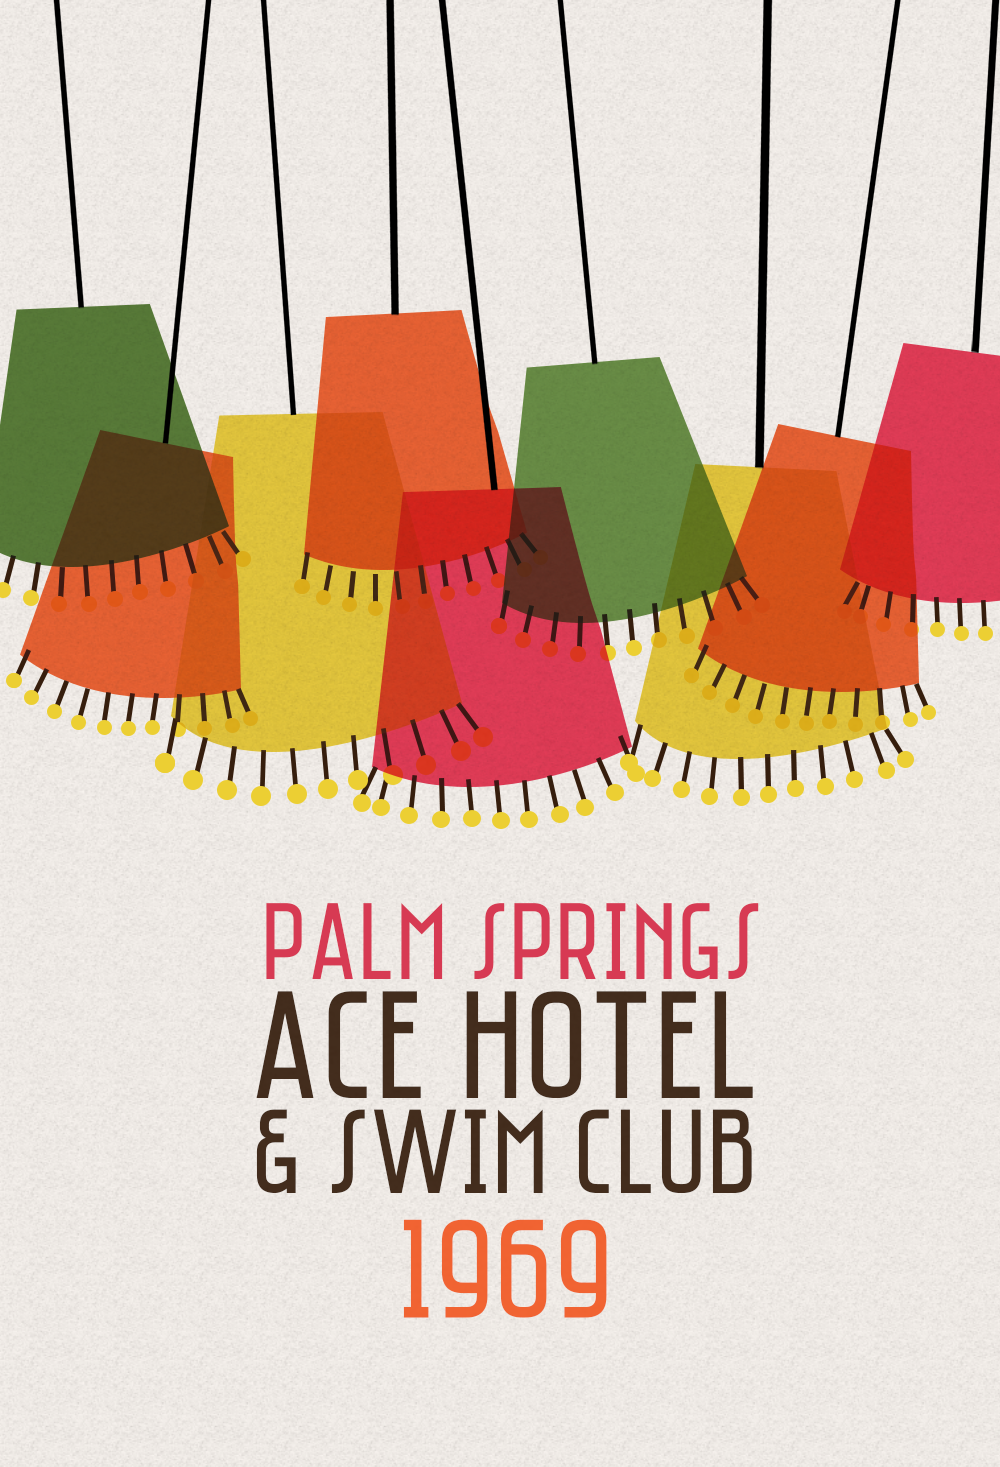 Whenever I Think Retro Immediately Of The Iconic Ace Hotel Specifically Palm Springs Location Love Vintage Hotels And Their Print